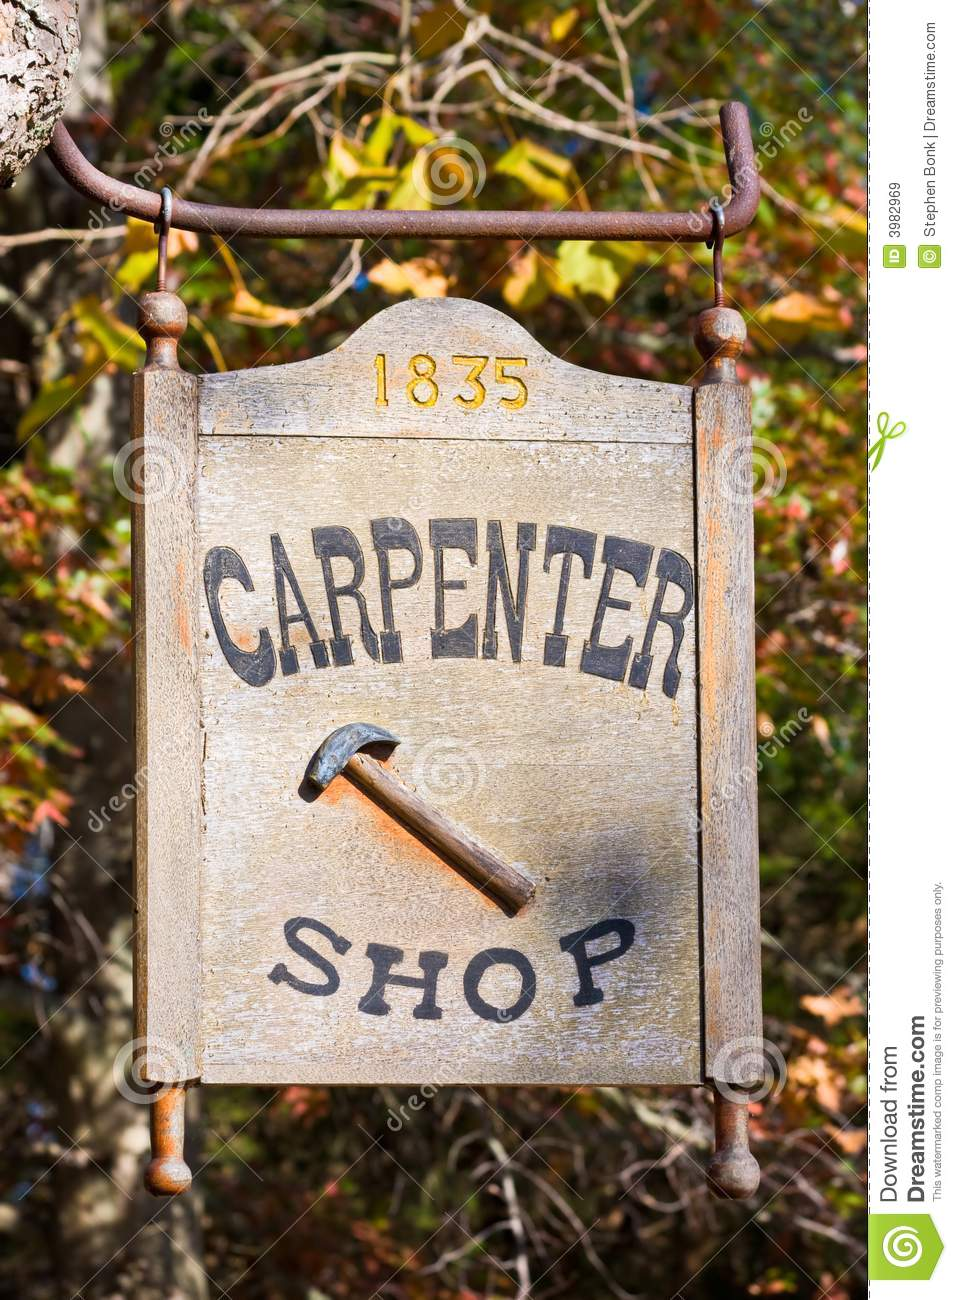 carpenter shop sign at the carpenter shop in Allaire Village, New ...